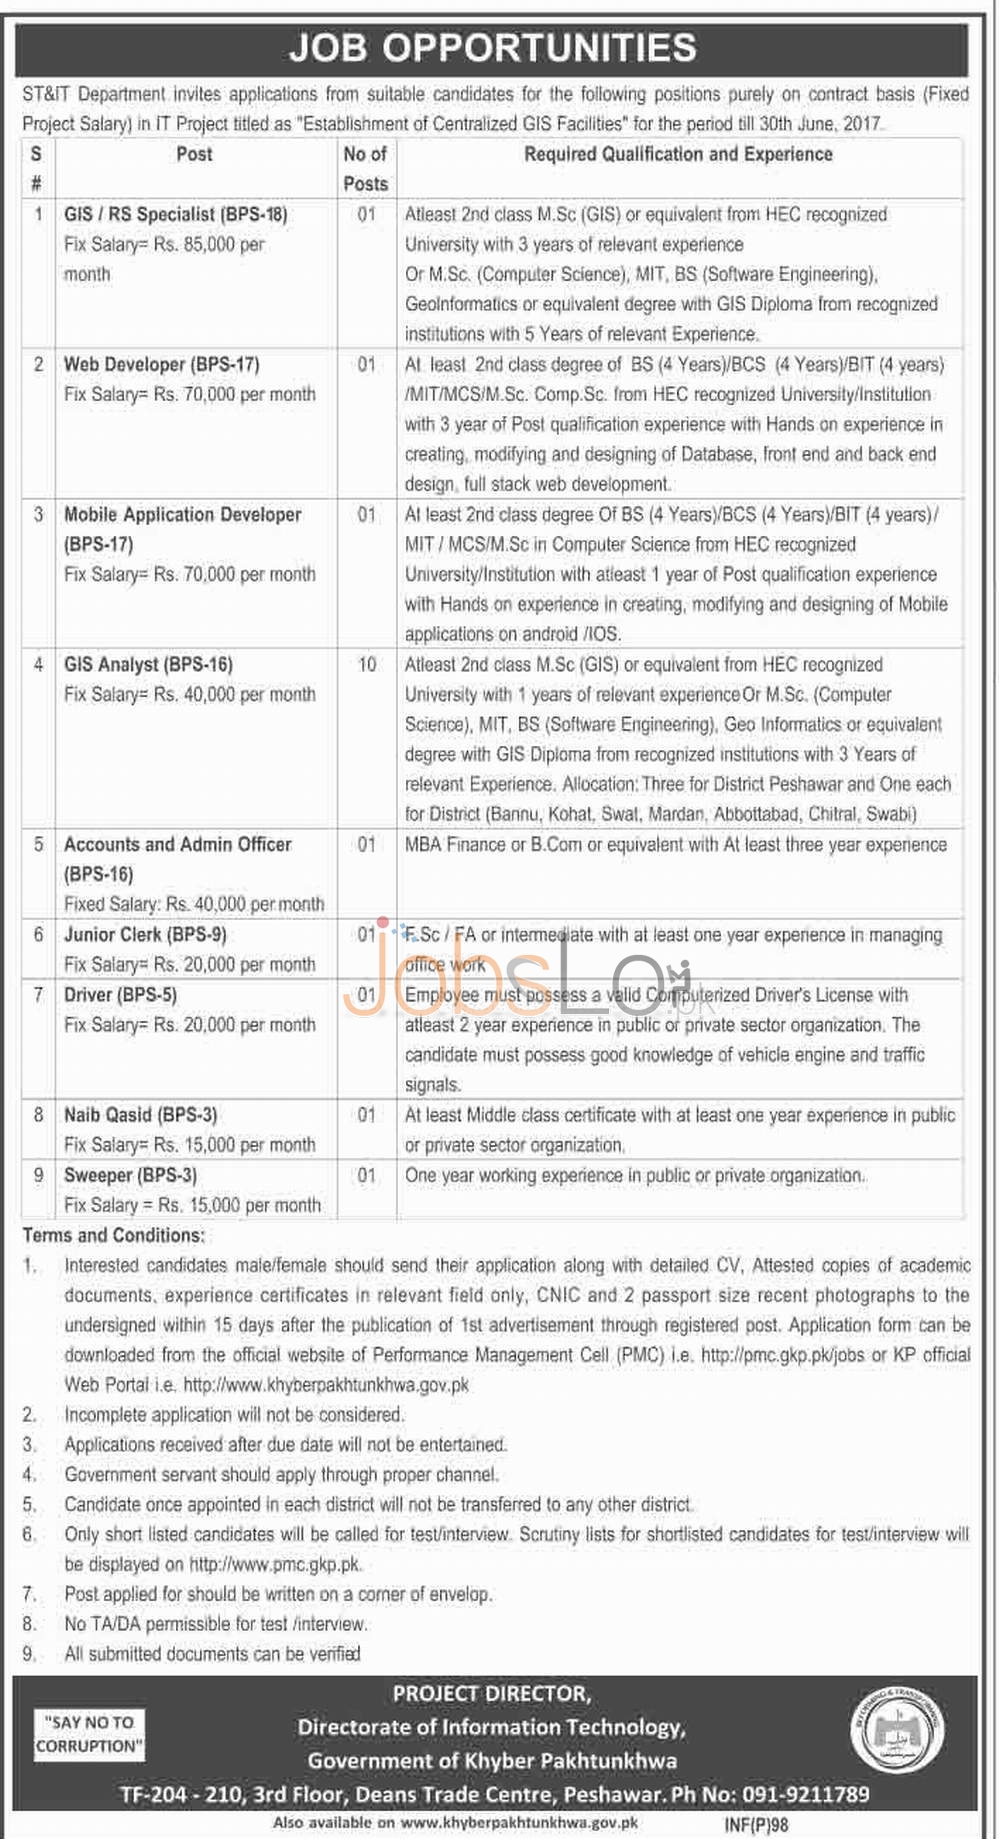 Recruitment Offers in ST&IT Deaprtment 2016